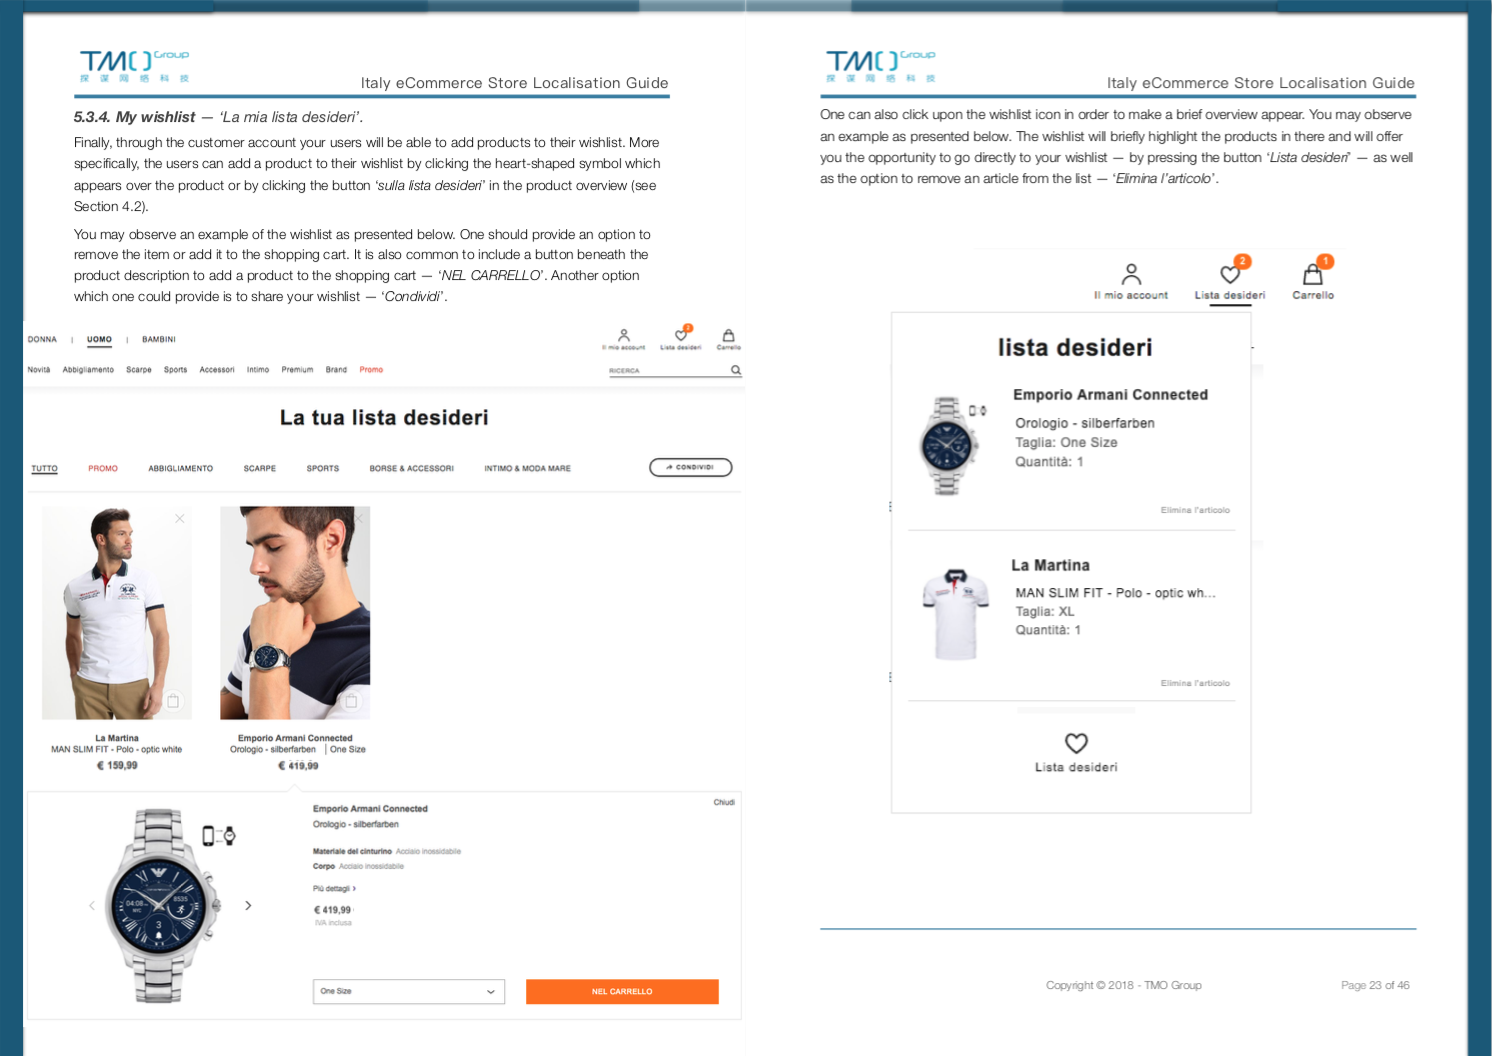 italy ecommerce store localisation guide